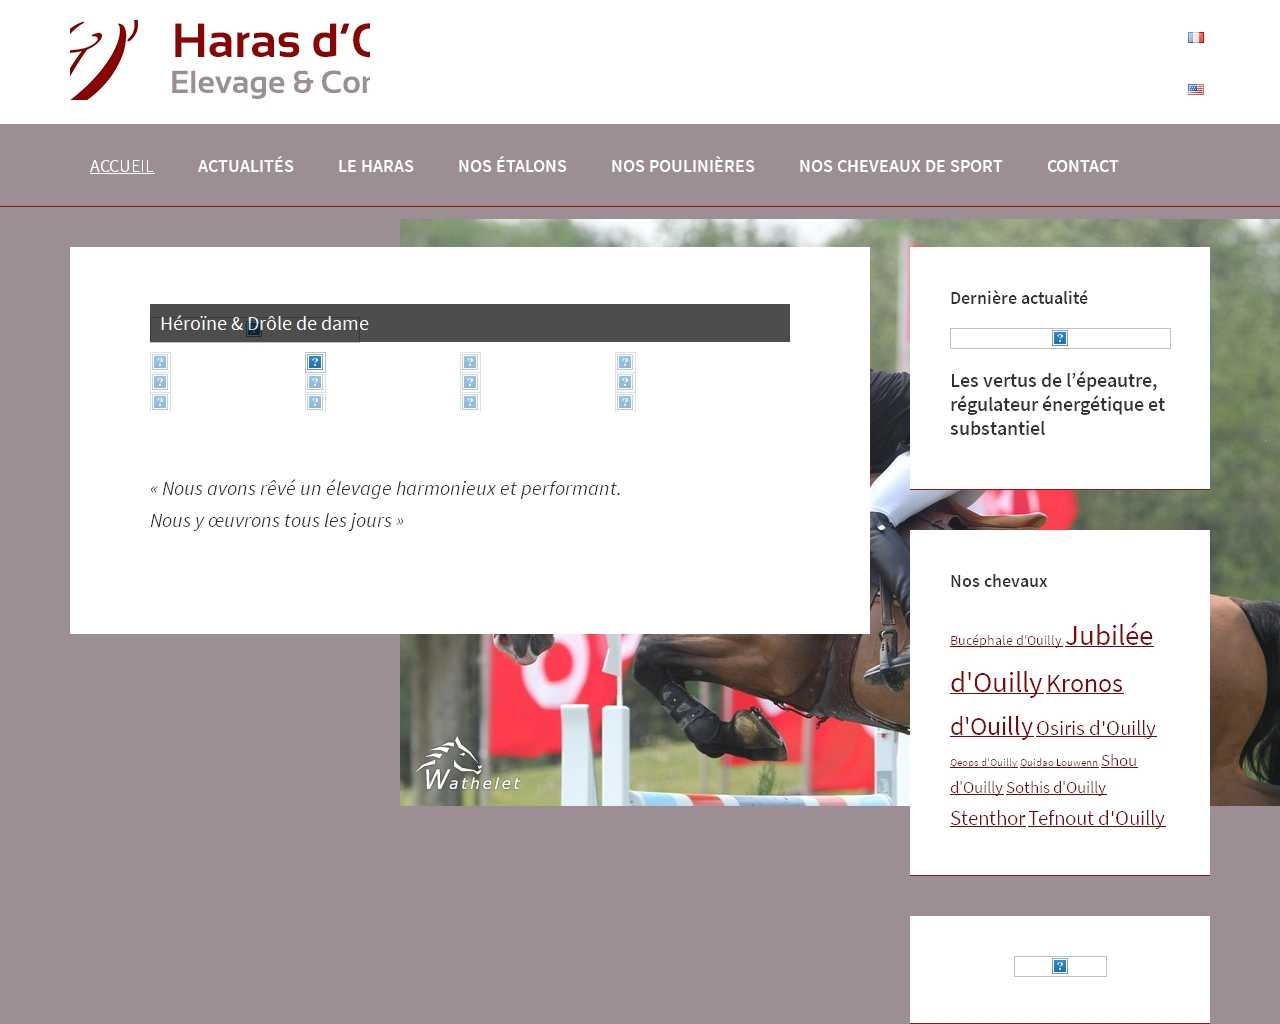 Haras d'Ouilly